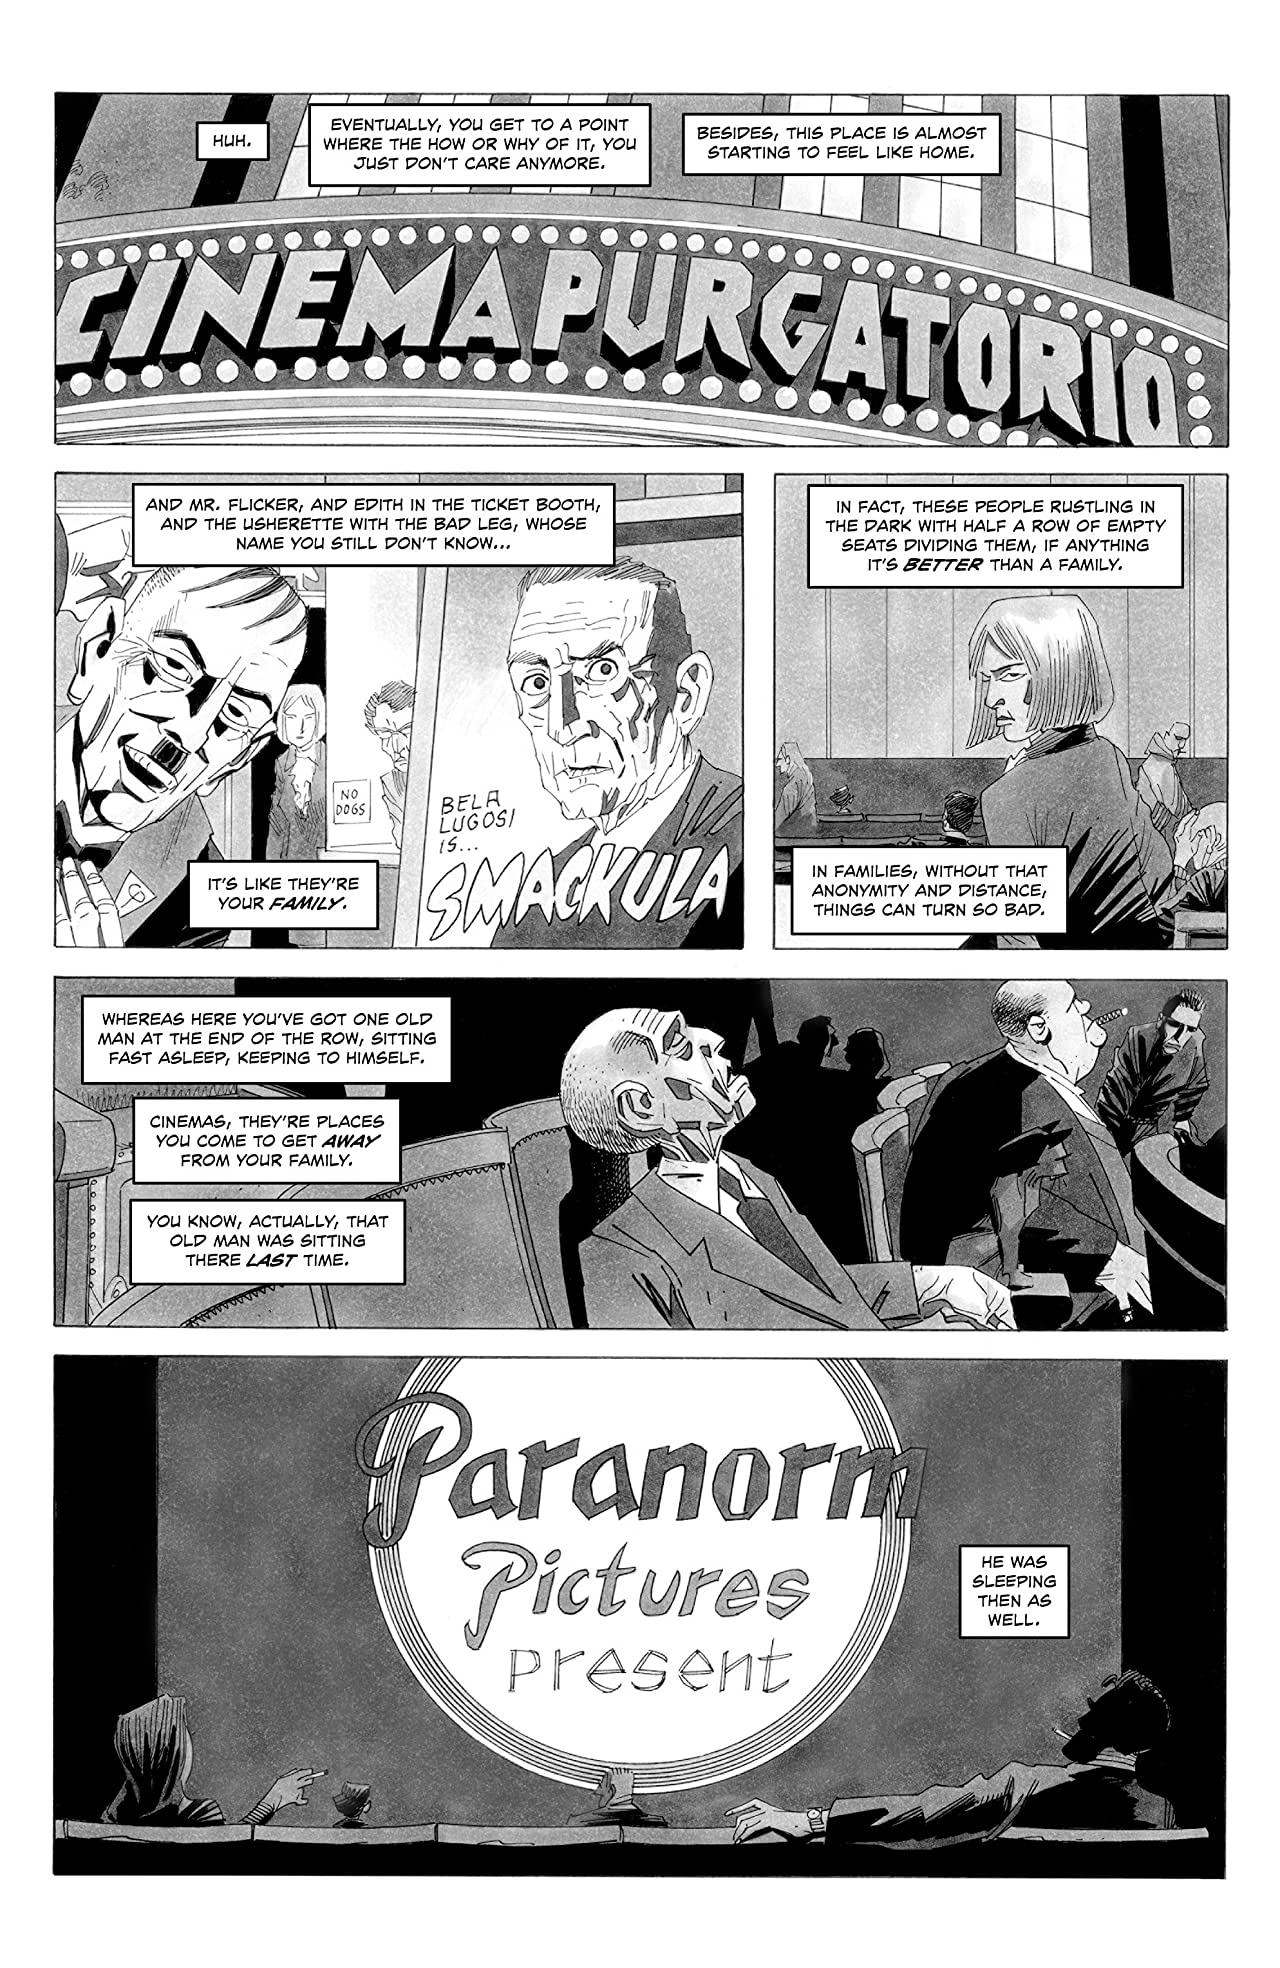 Cinema Purgatorio #7